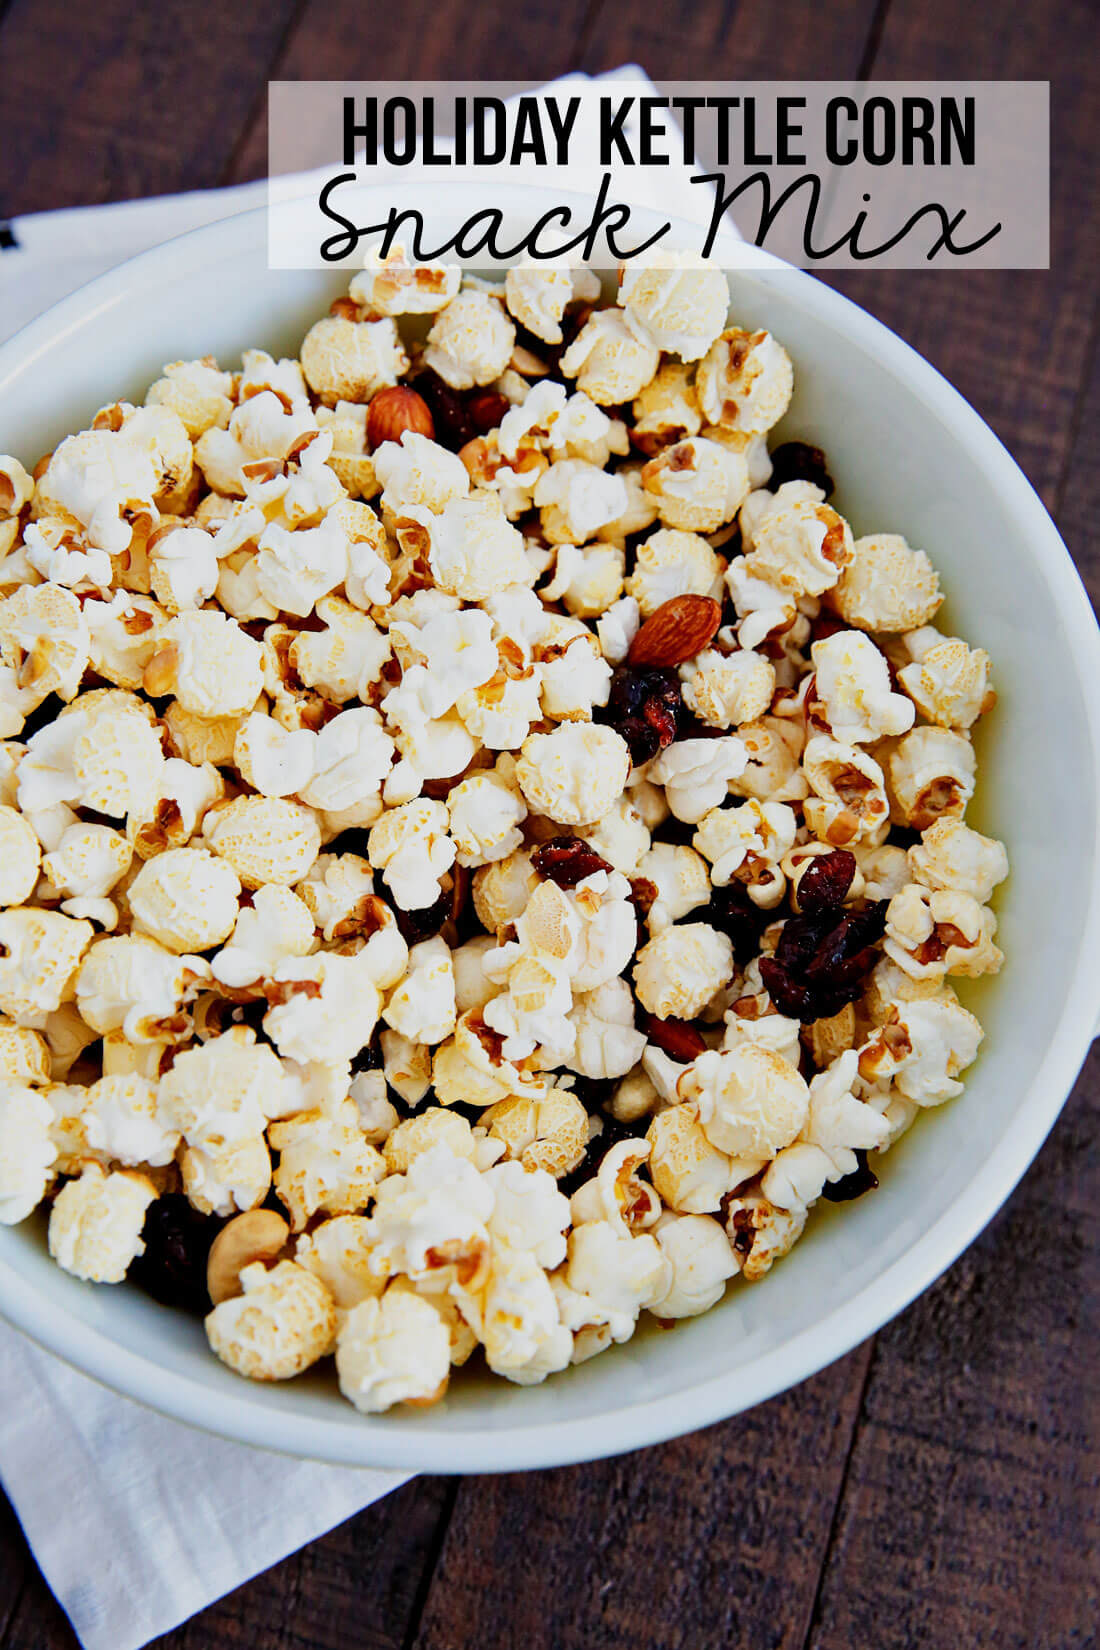 Holiday Kettle Corn Snack Mix - make this treat for friends and neighbors for Christmas! from www.thirtyhandmadedays.com